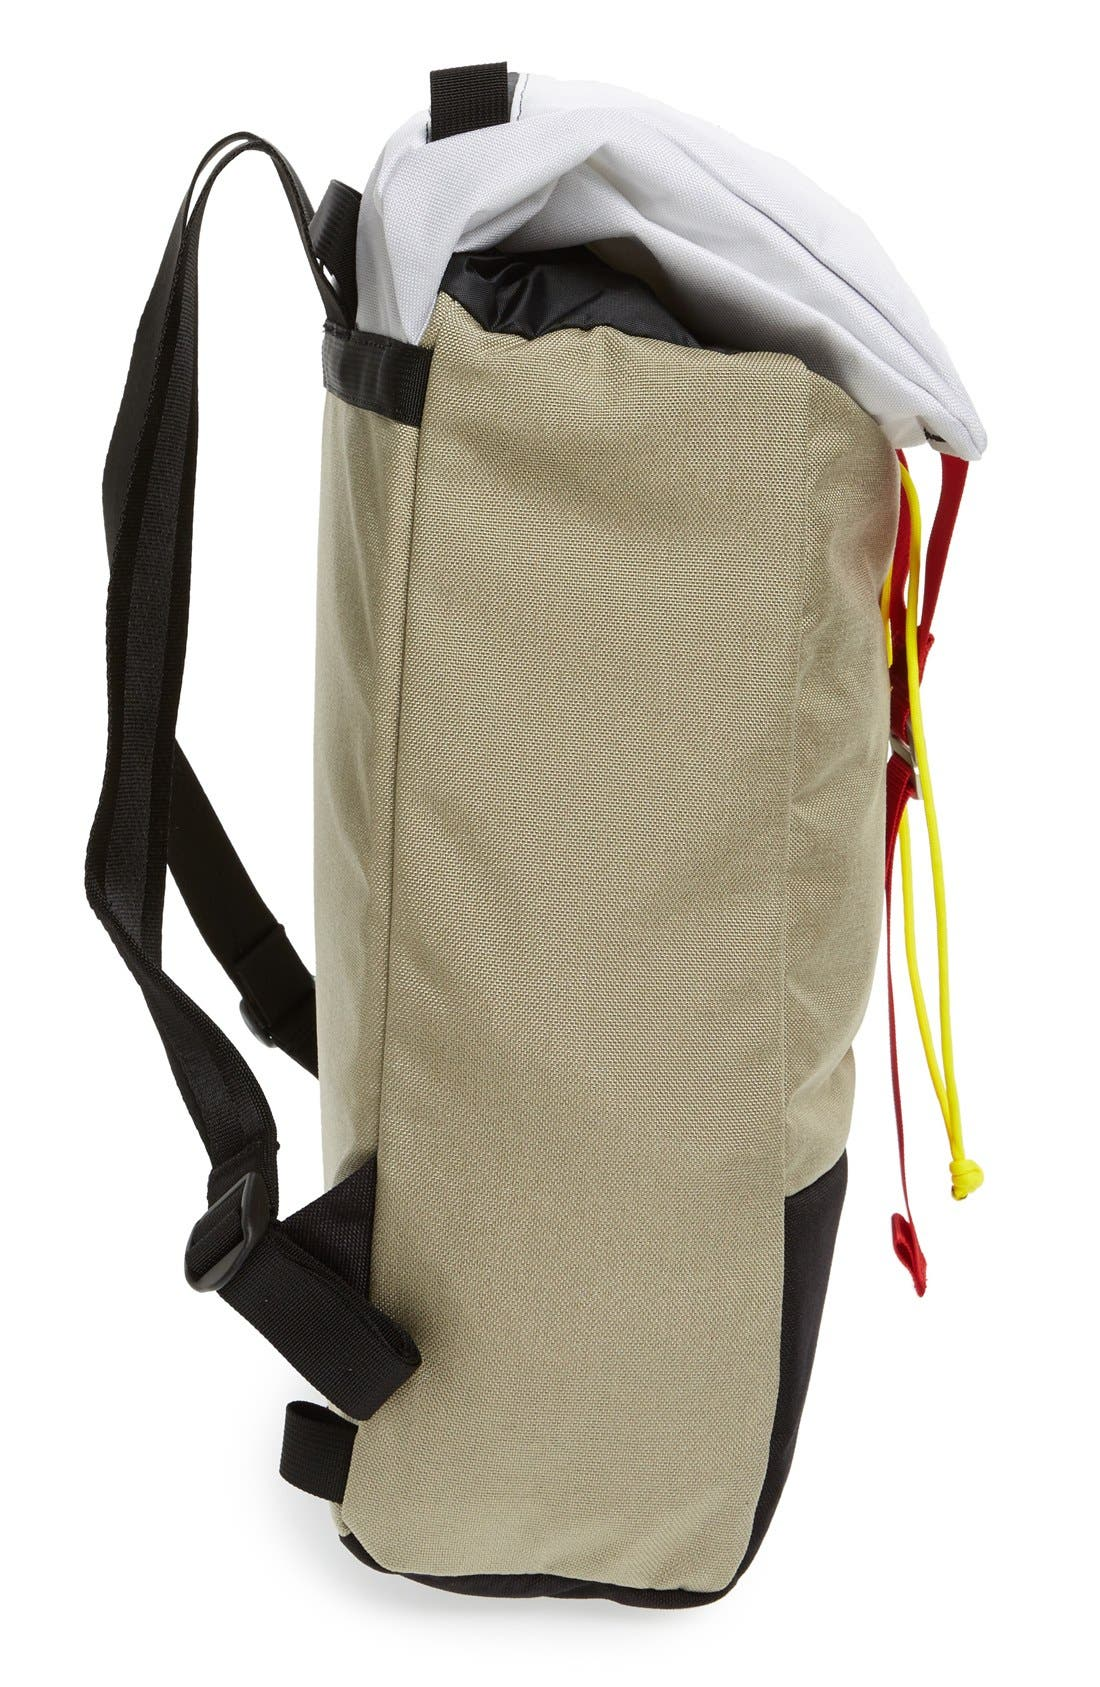 TOPO DESIGNS,                             'Y-Pack' Backpack,                             Alternate thumbnail 6, color,                             031